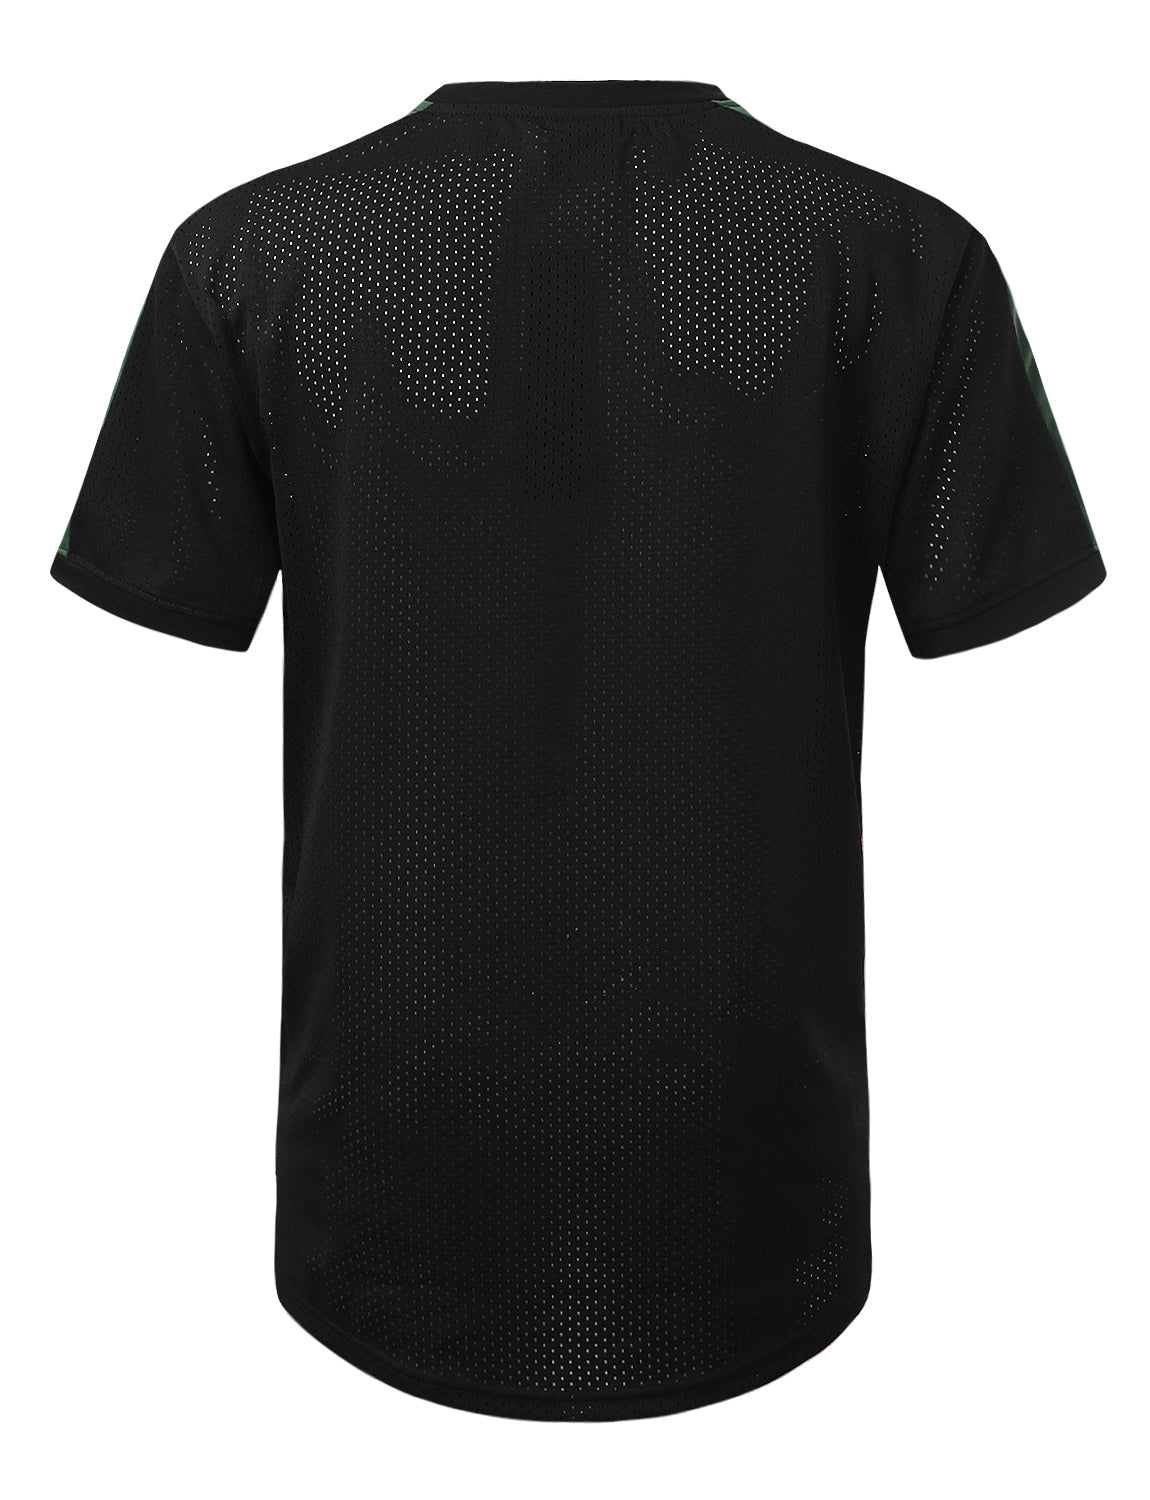 BLACKRED 3 Stripe Side Panel Mesh Jersey Tee - URBANCREWS